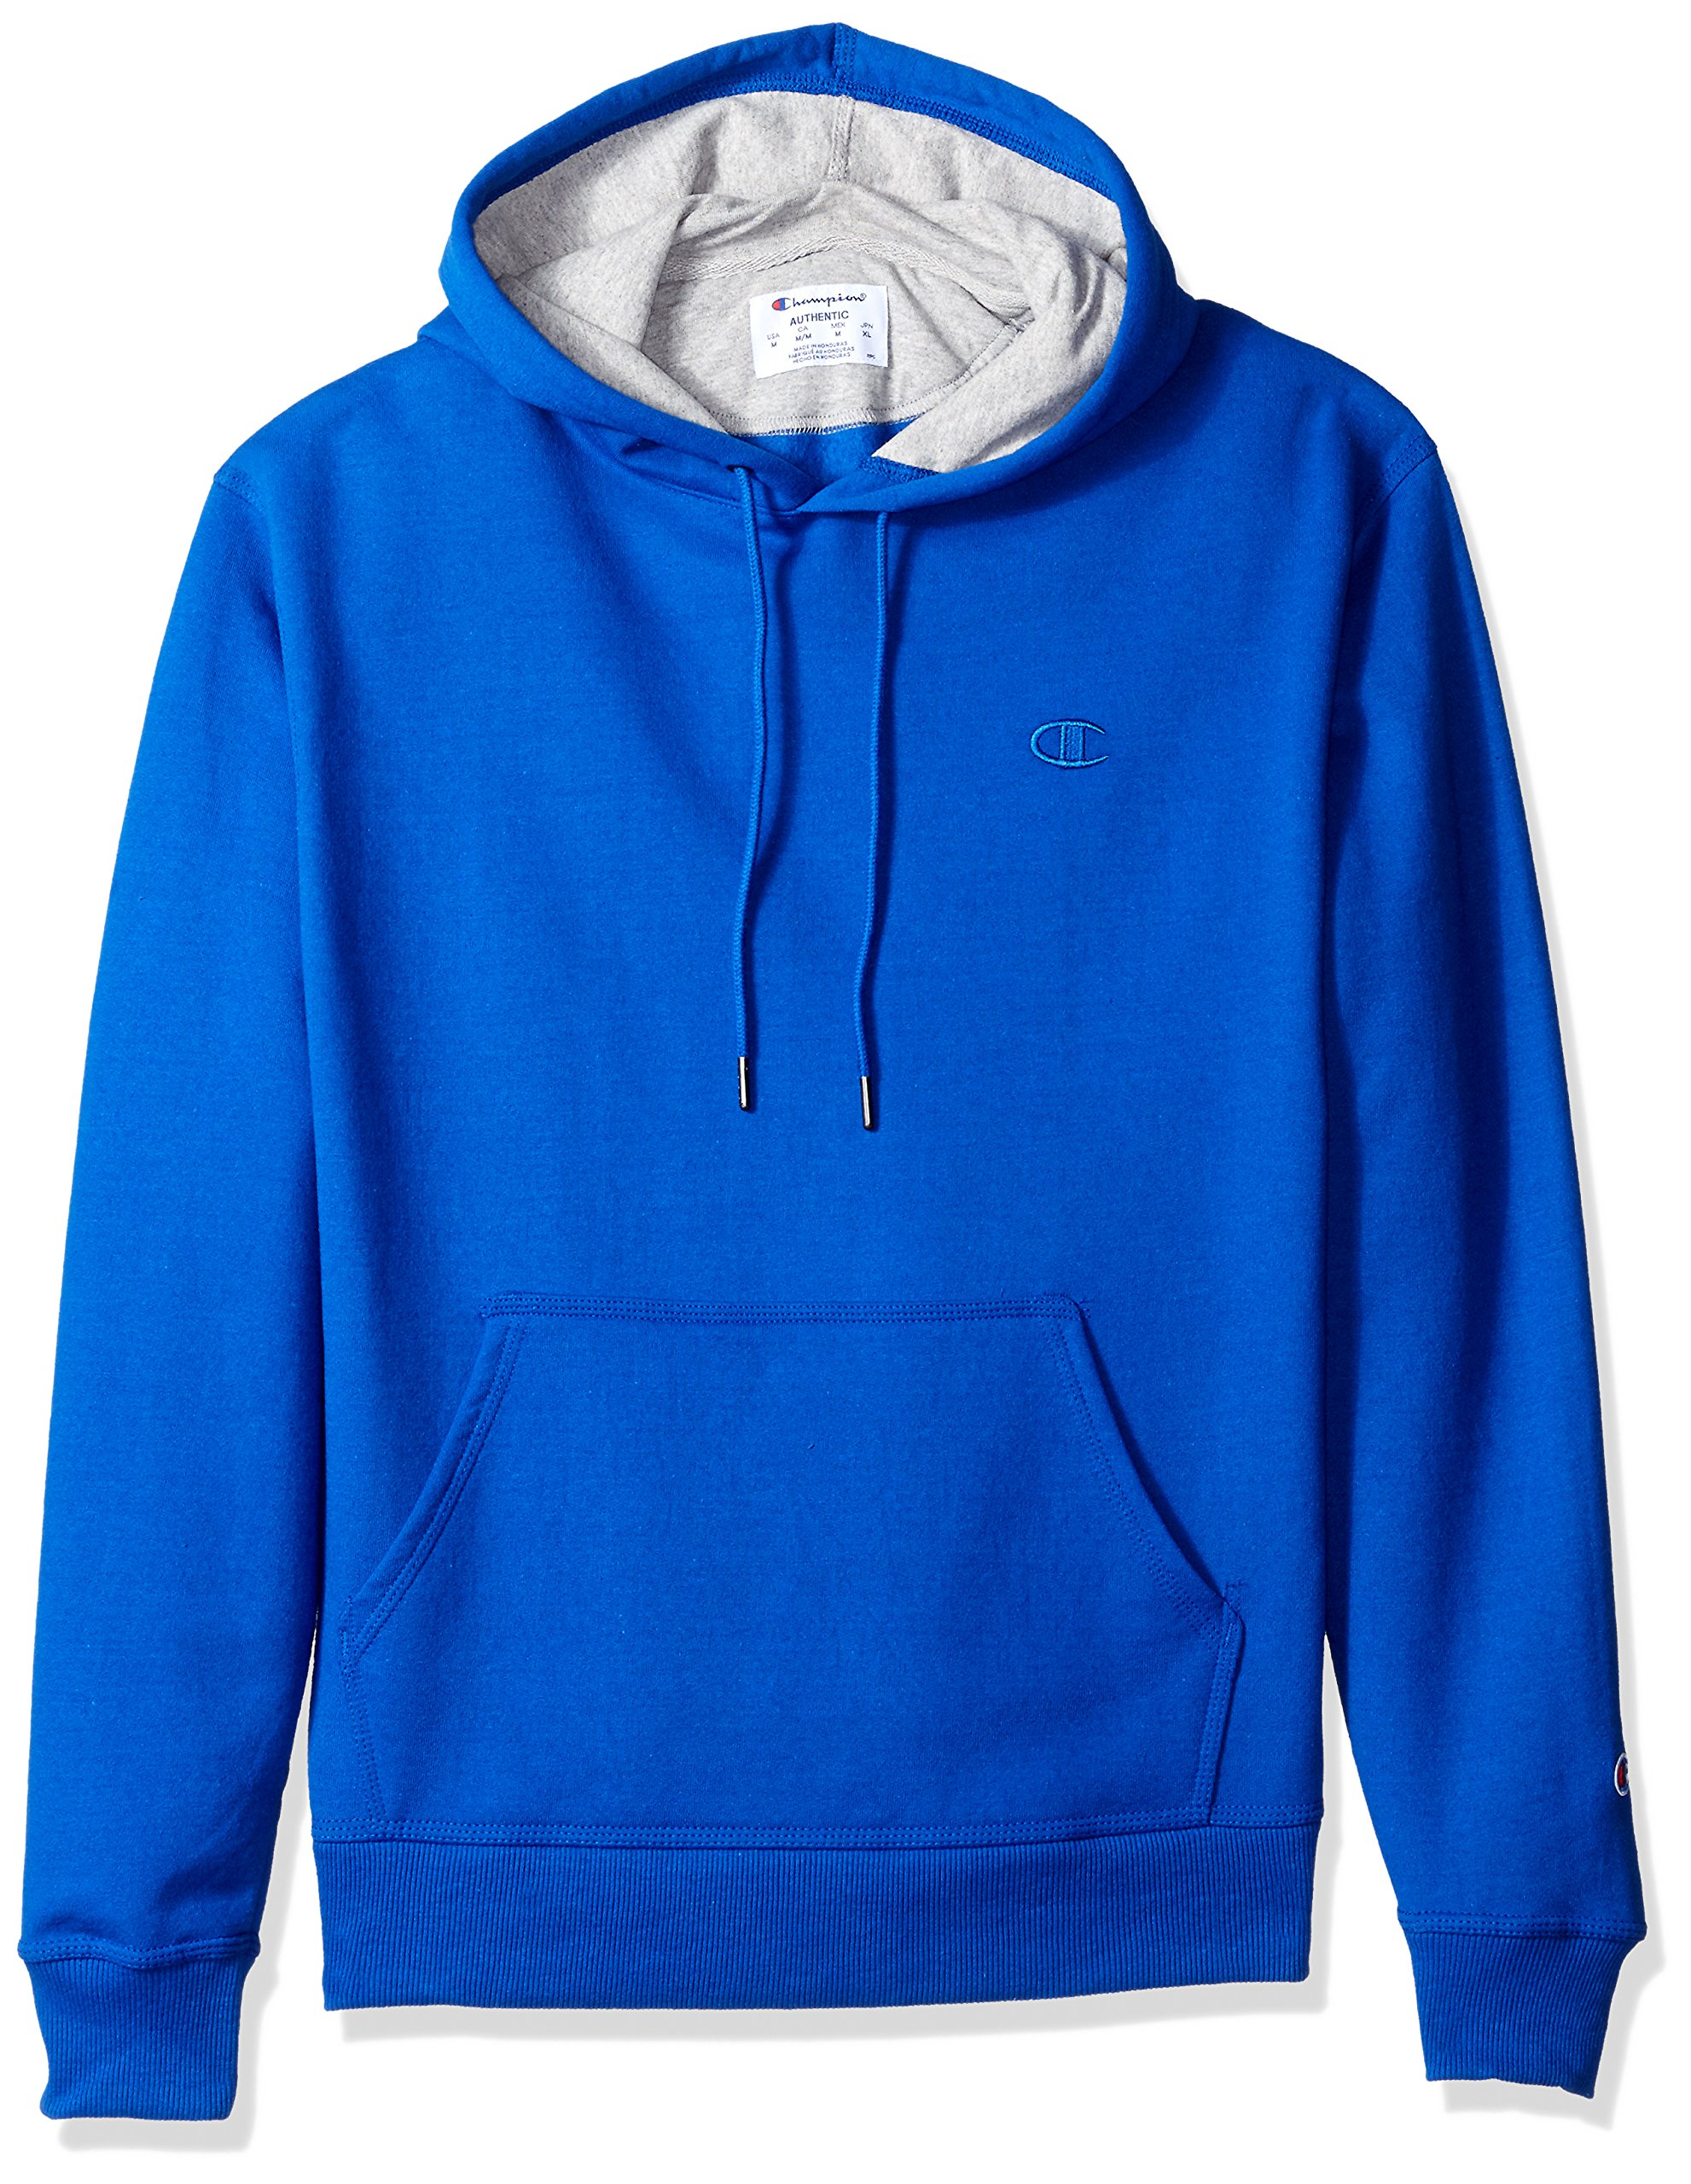 Champion Men's Powerblend Pullover Hoodie, Surf the Web, X-Large by Champion